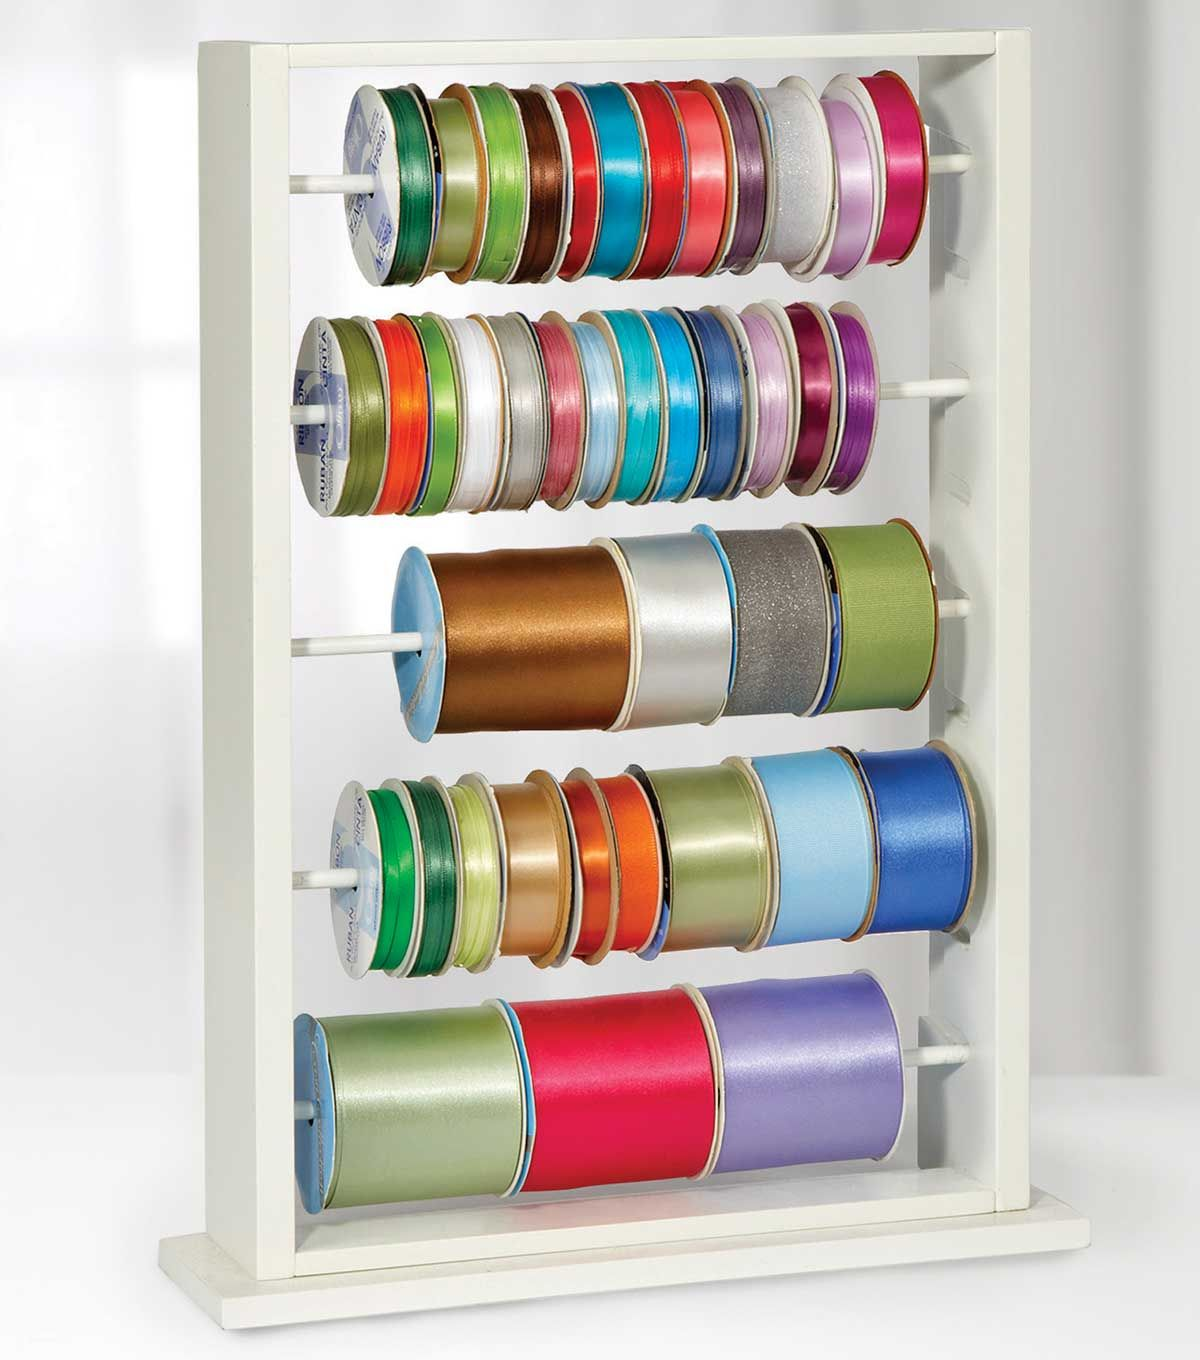 The Ribbon Ladder Is Designed To Hold Numerous Spools Of Various